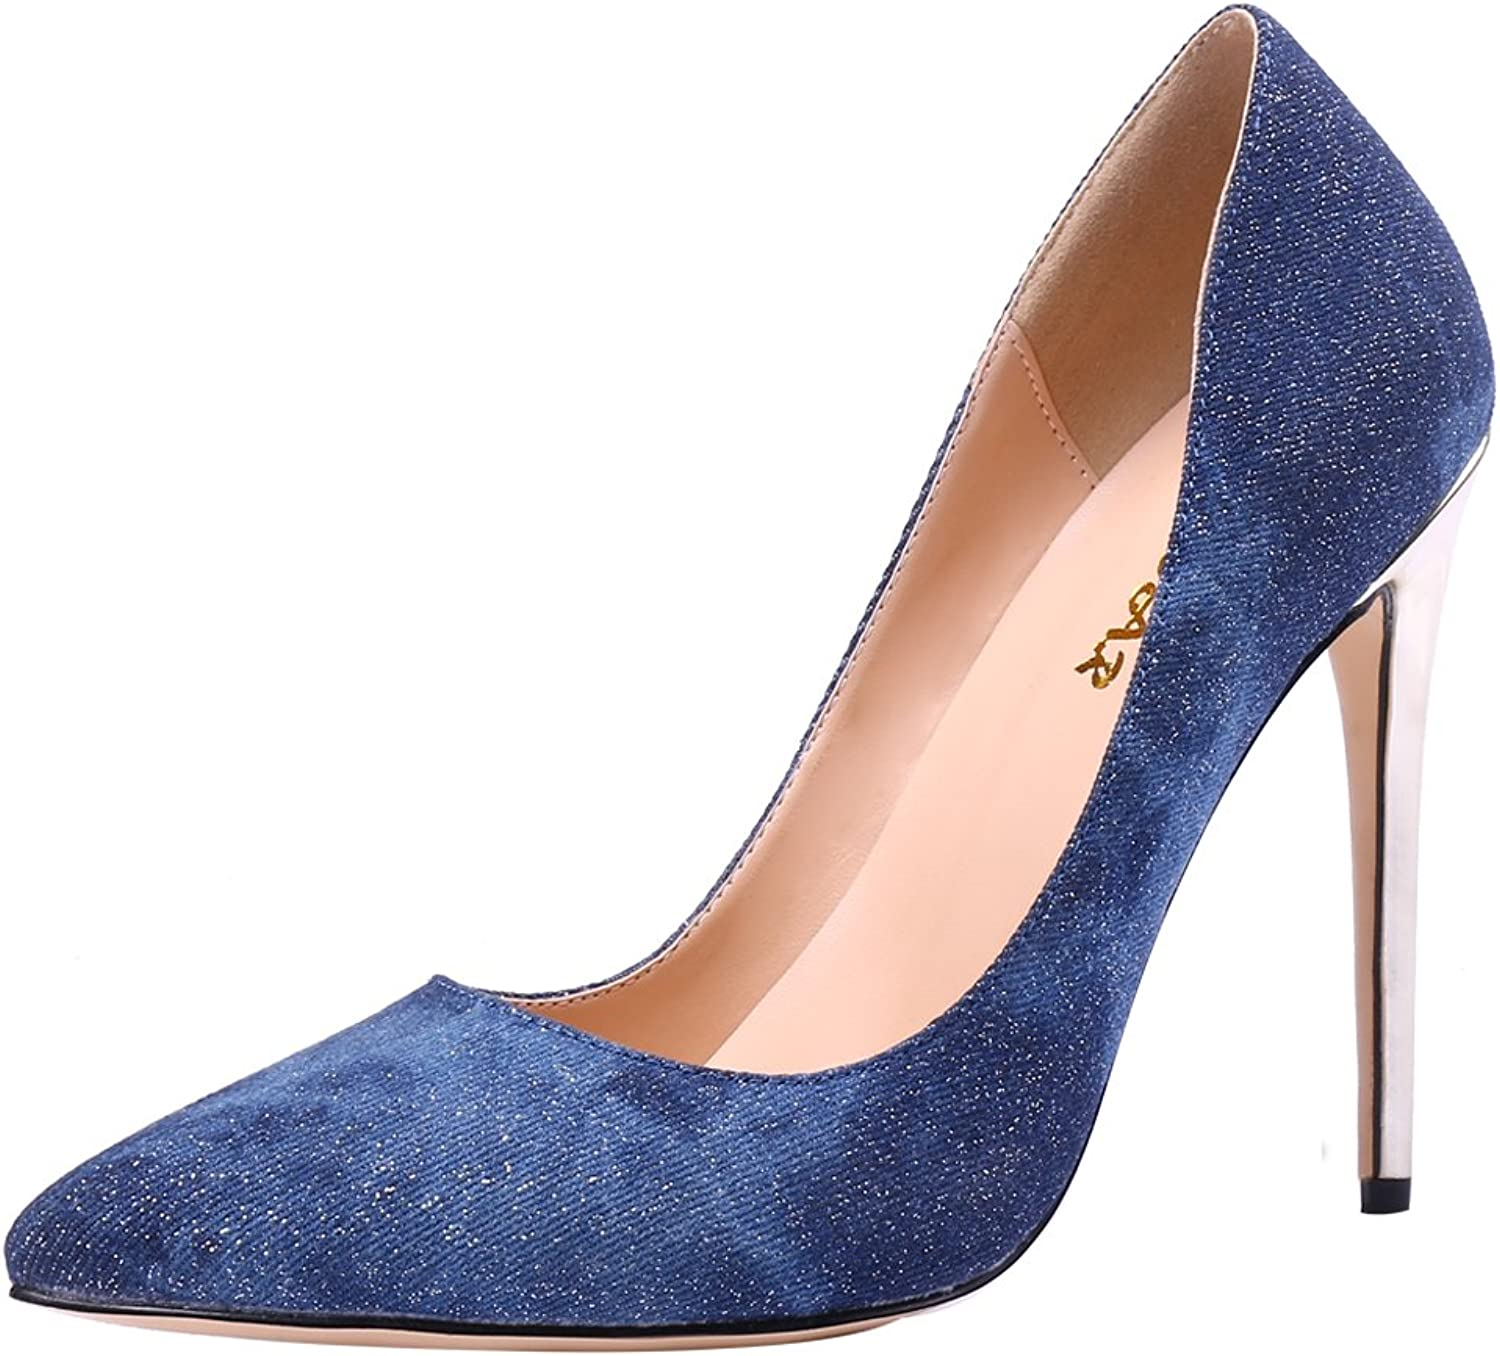 AOOAR Women's Party Stiletto Pumps shoes